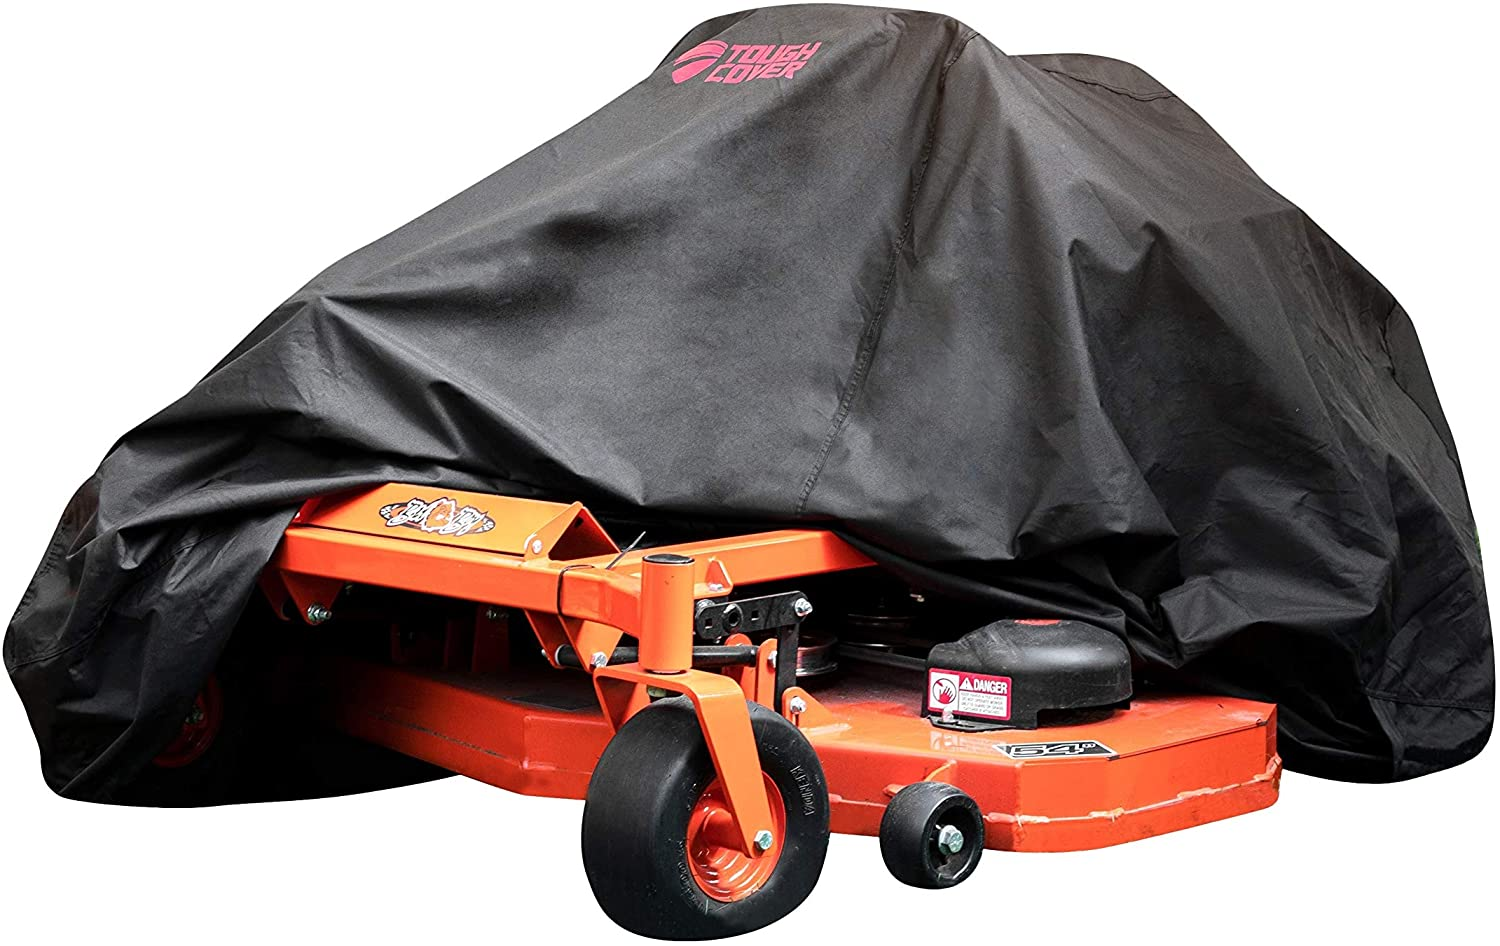 ToughCover Premium Zero-Turn Mower Cover